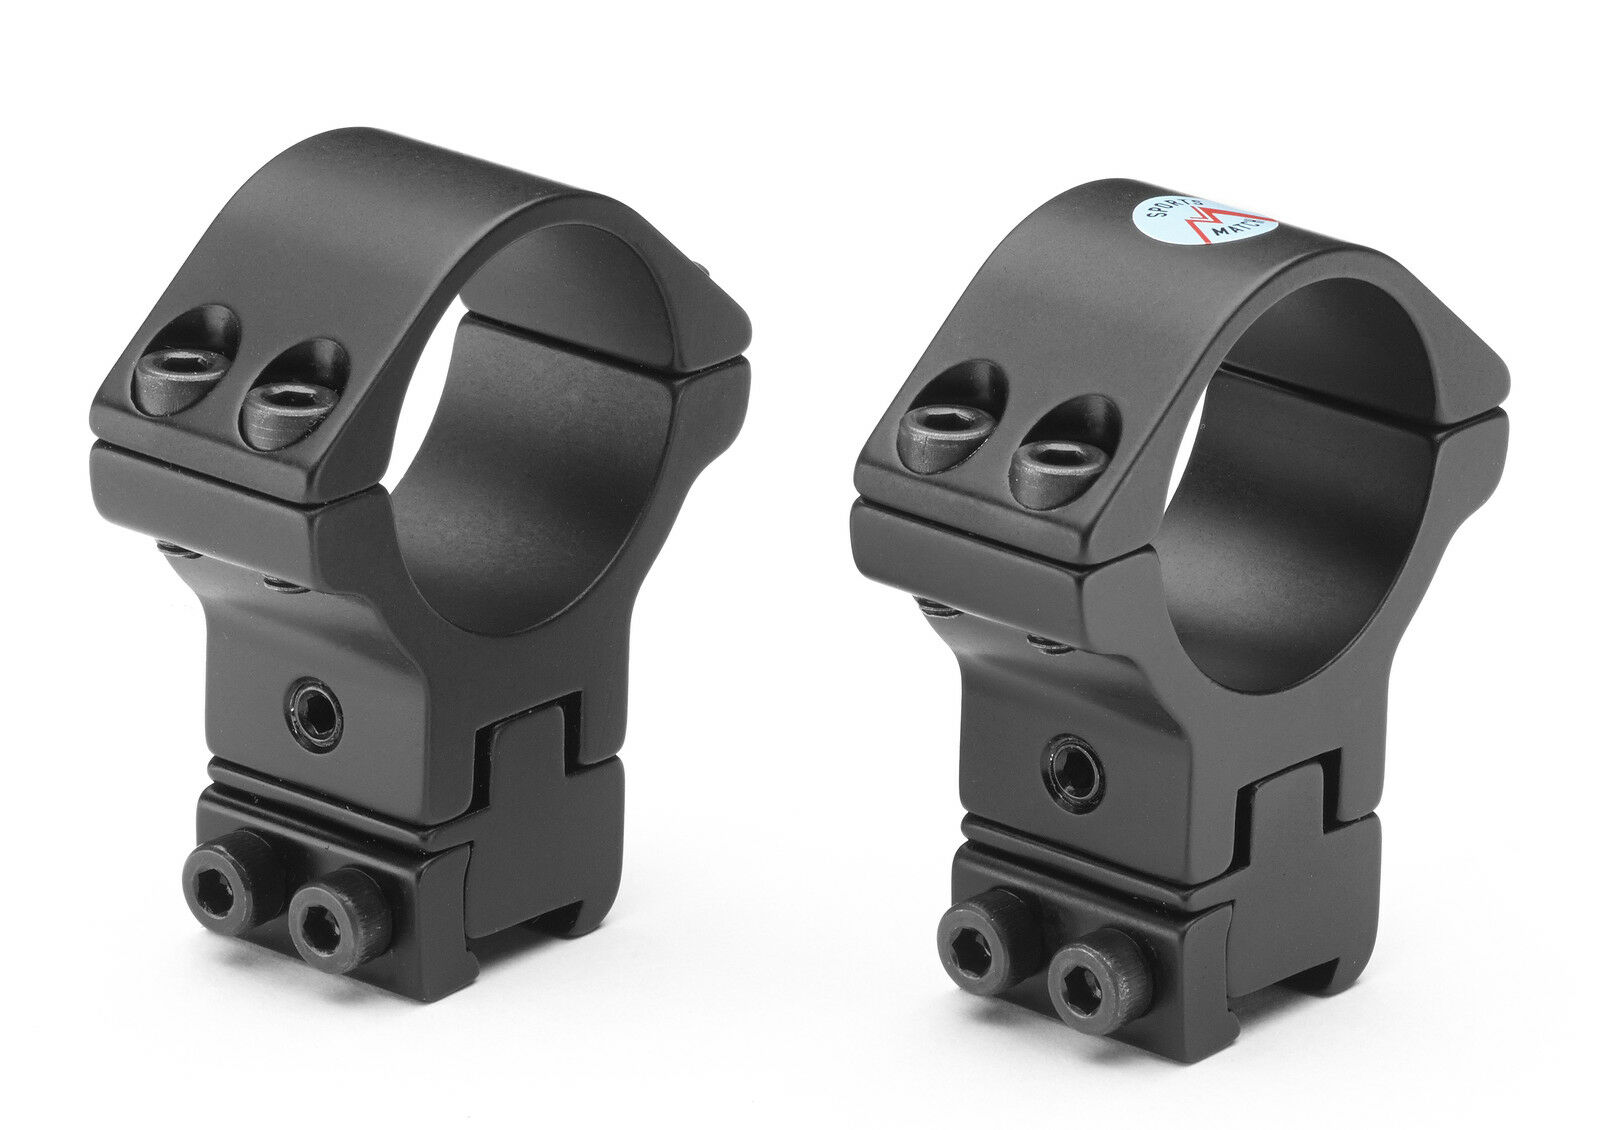 SPORTSMATCH  ATP66 Scope Mounts for 30mm tubes adjustable for height and windage